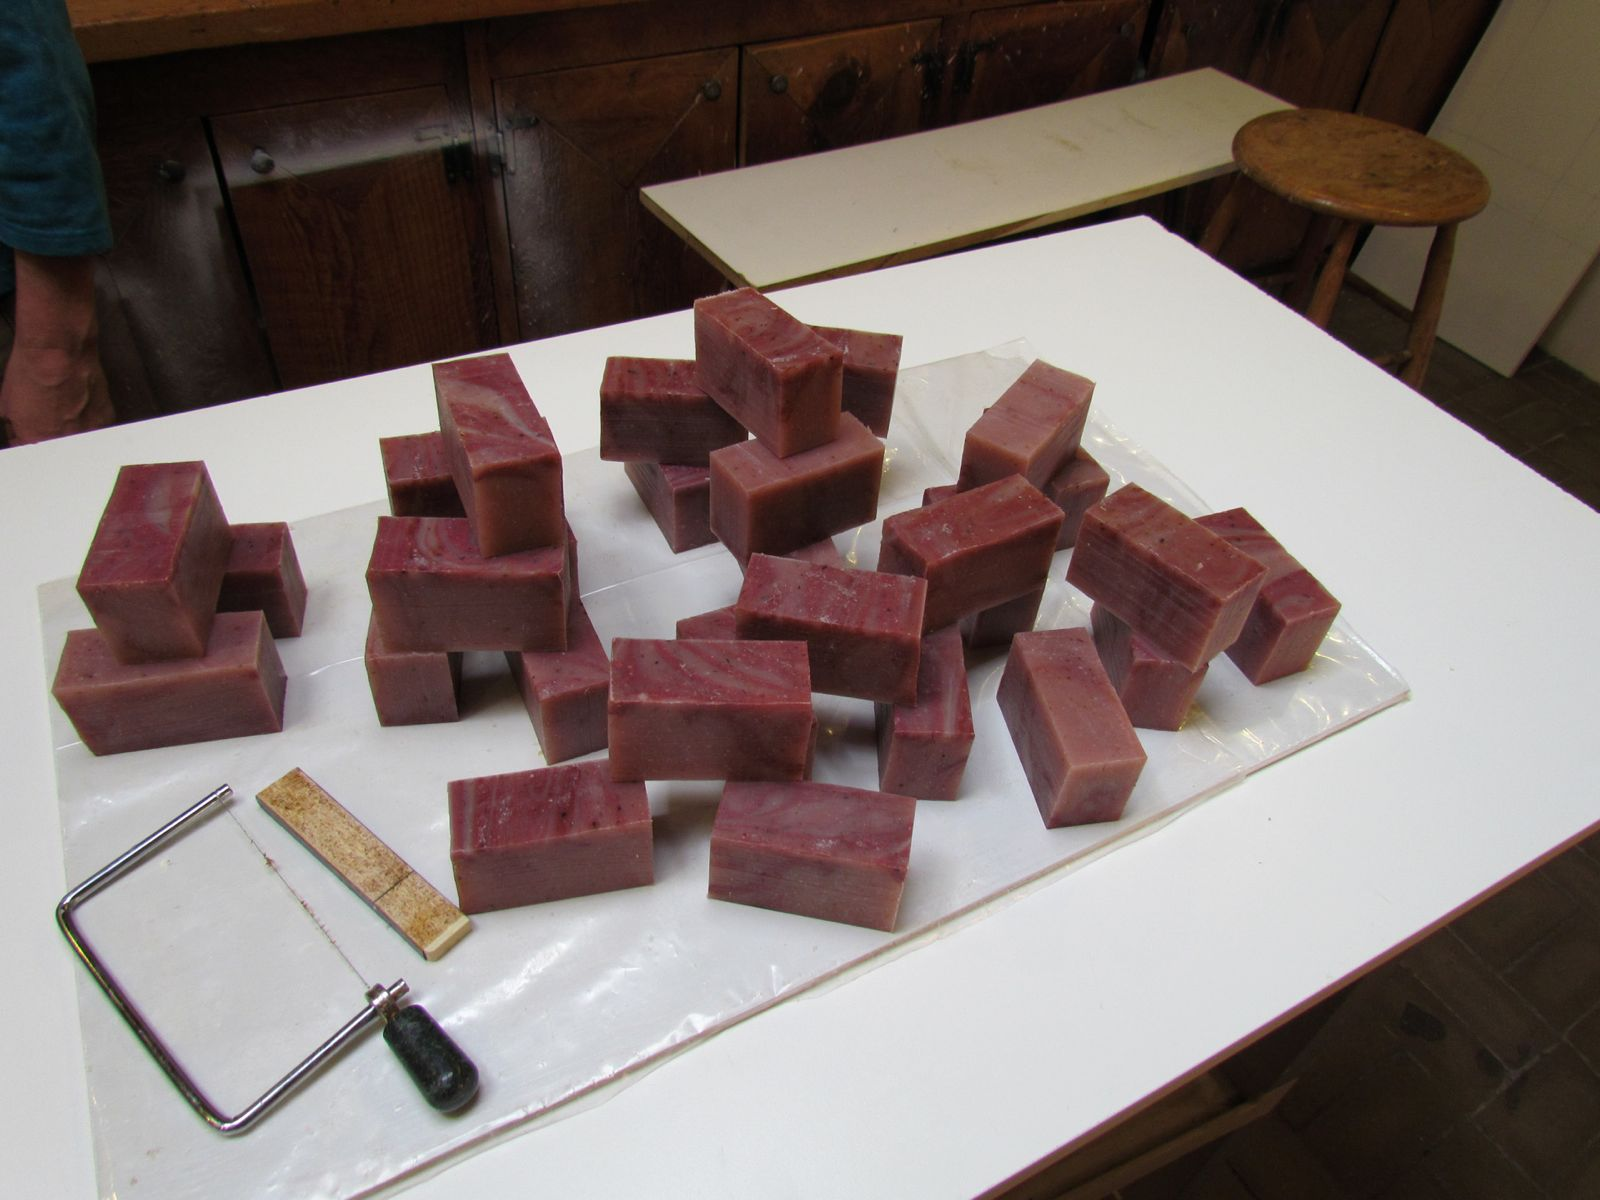 Rose soap waiting for packaging